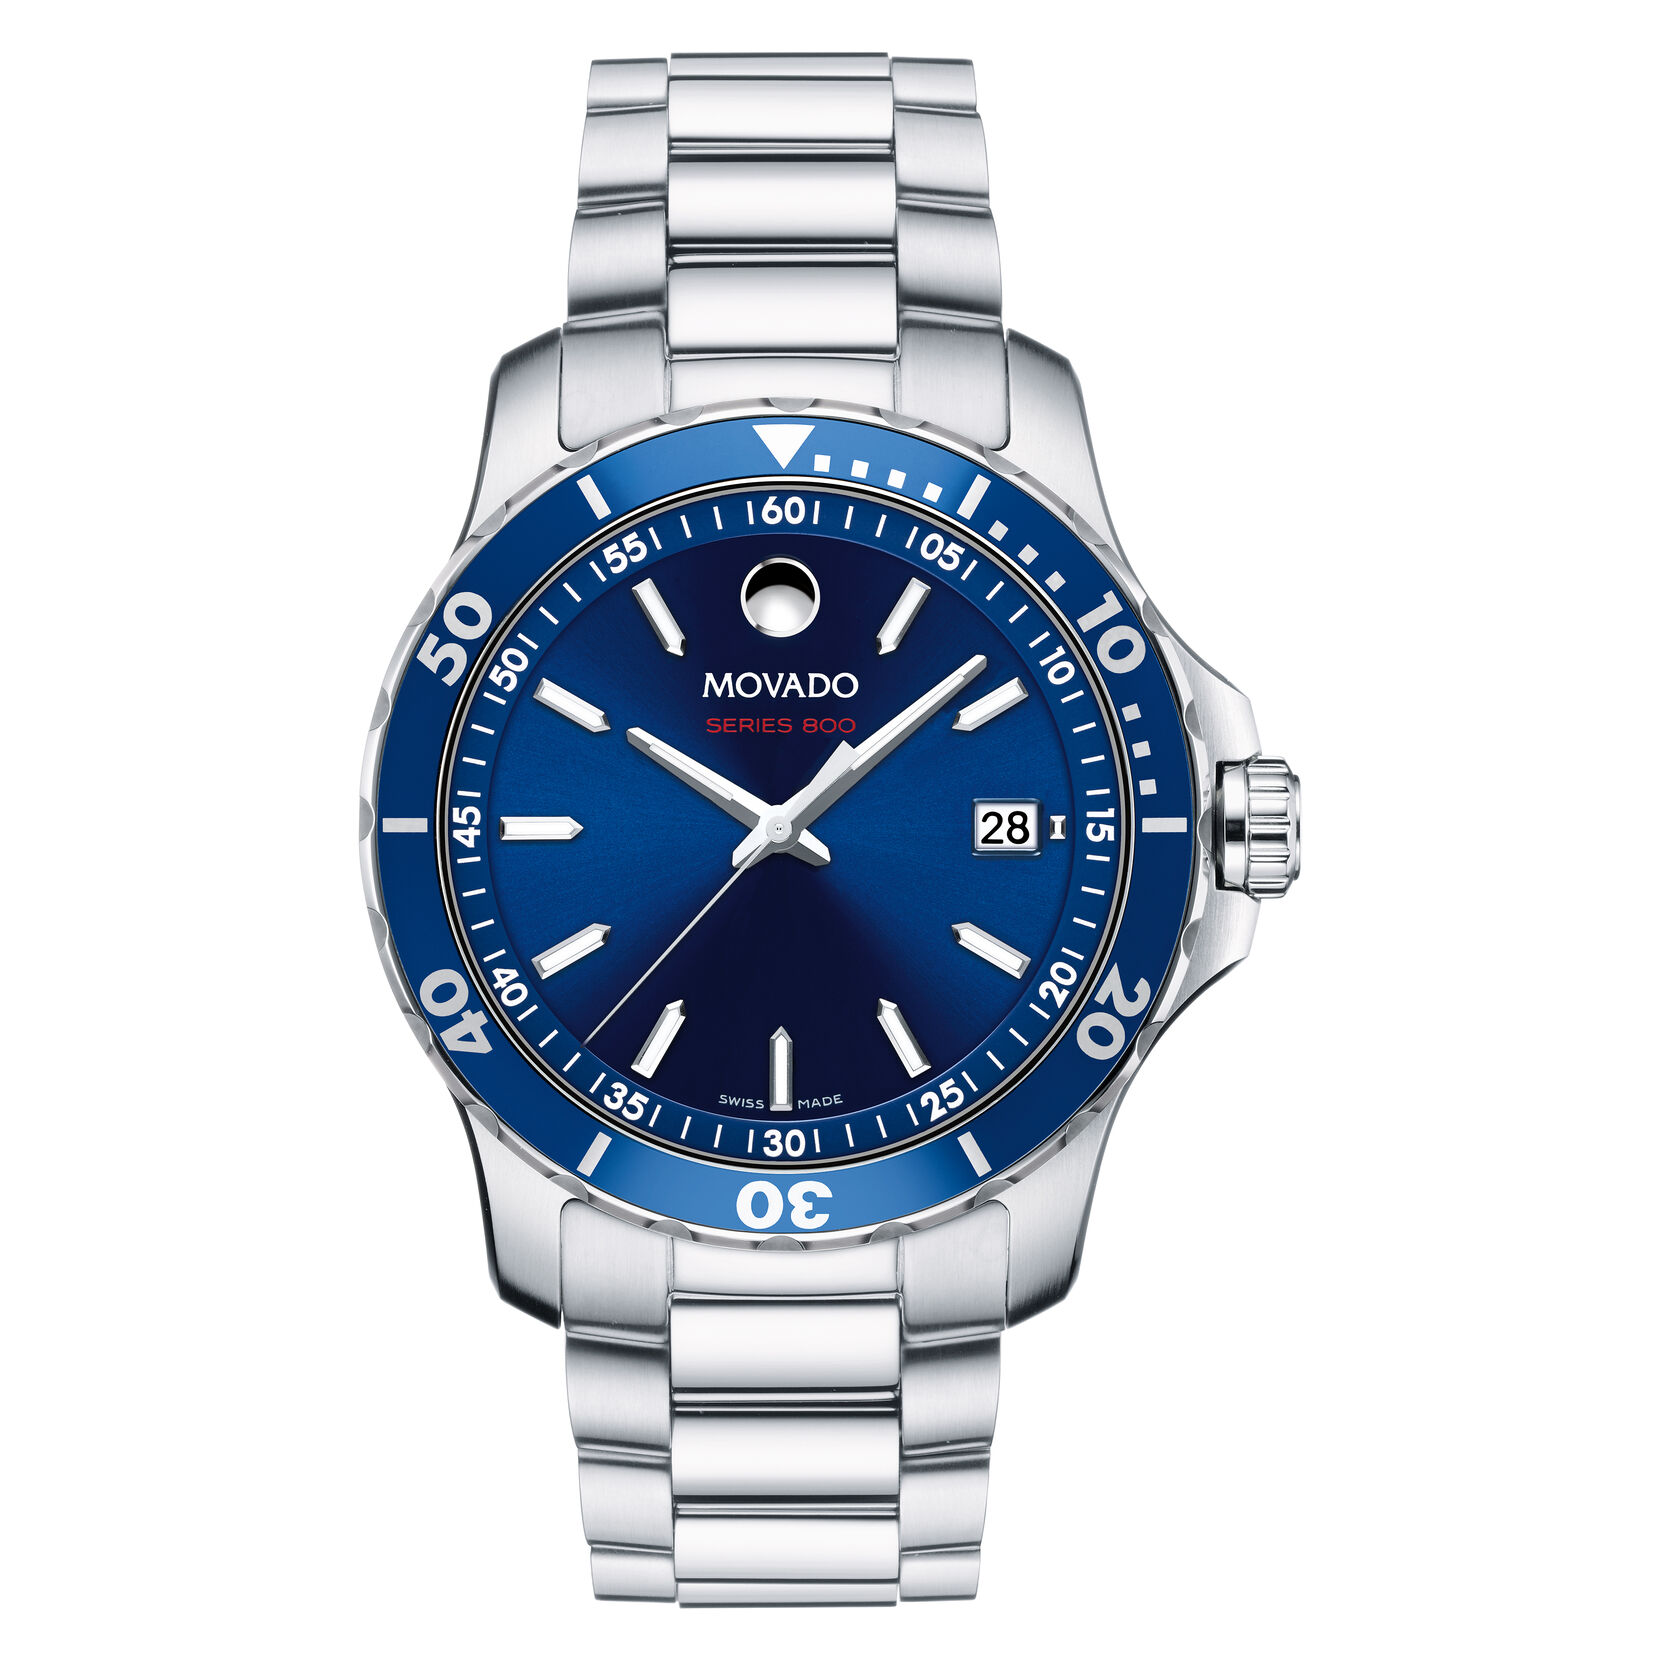 Movado Series 800, Blue Watch, Silver Watch, Stainless Steel